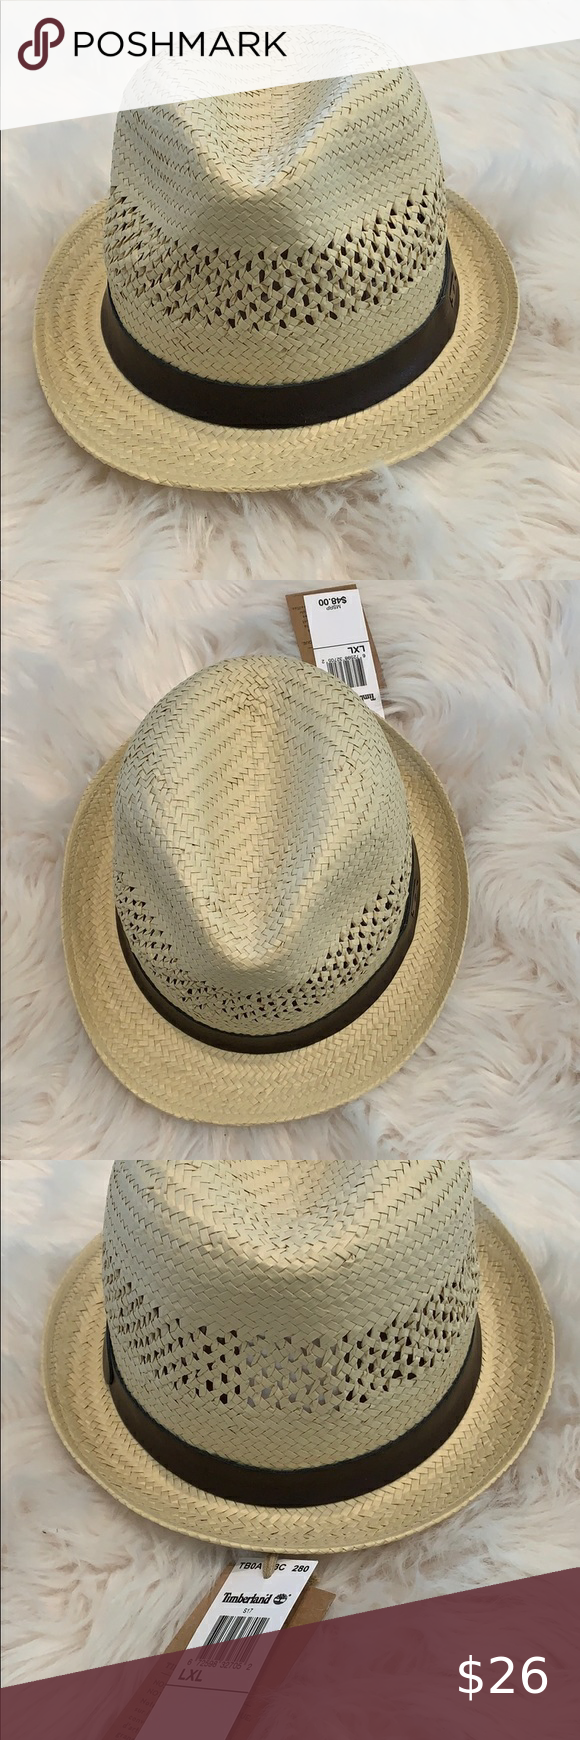 100 Straw Hat From Timberland Men S L Xl Timberland Mens Straw Hat Timberland